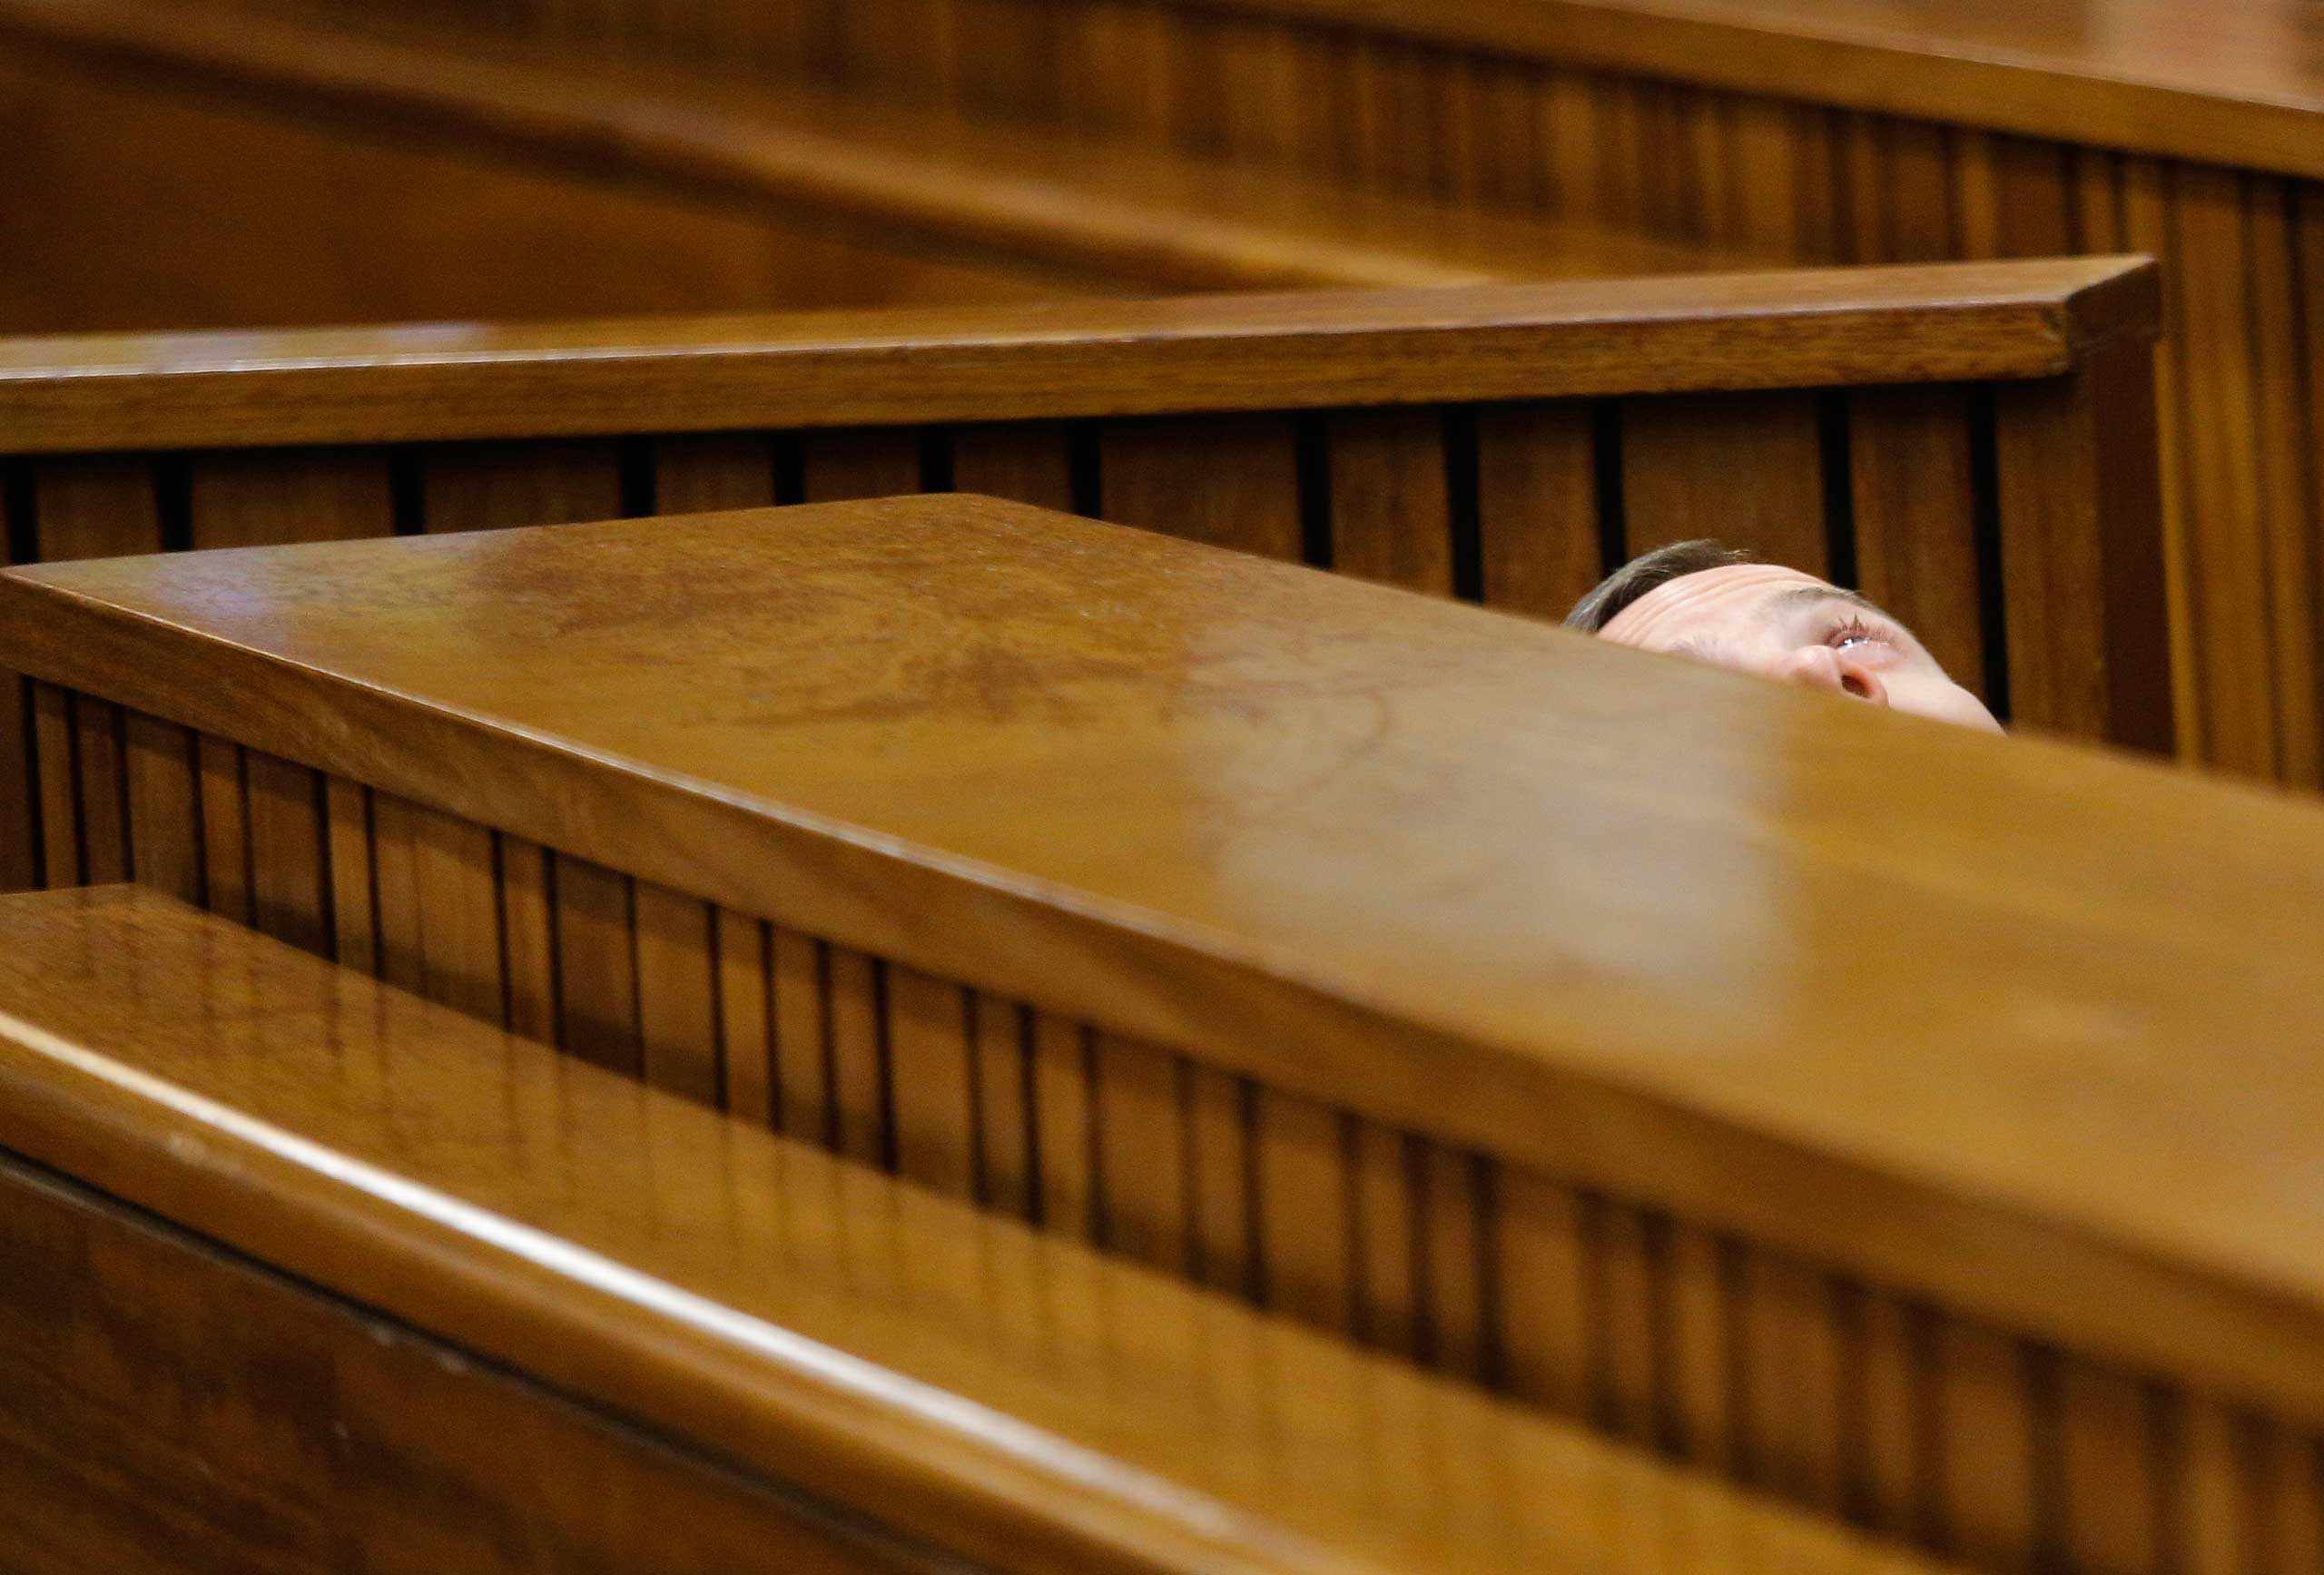 South African Paralympic athlete Oscar Pistorius is seen leaning back after applying eye drops as he prepares himself for another day in the dock during his ongoing murder trial in Pretoria, South Africa, March 14, 2014.